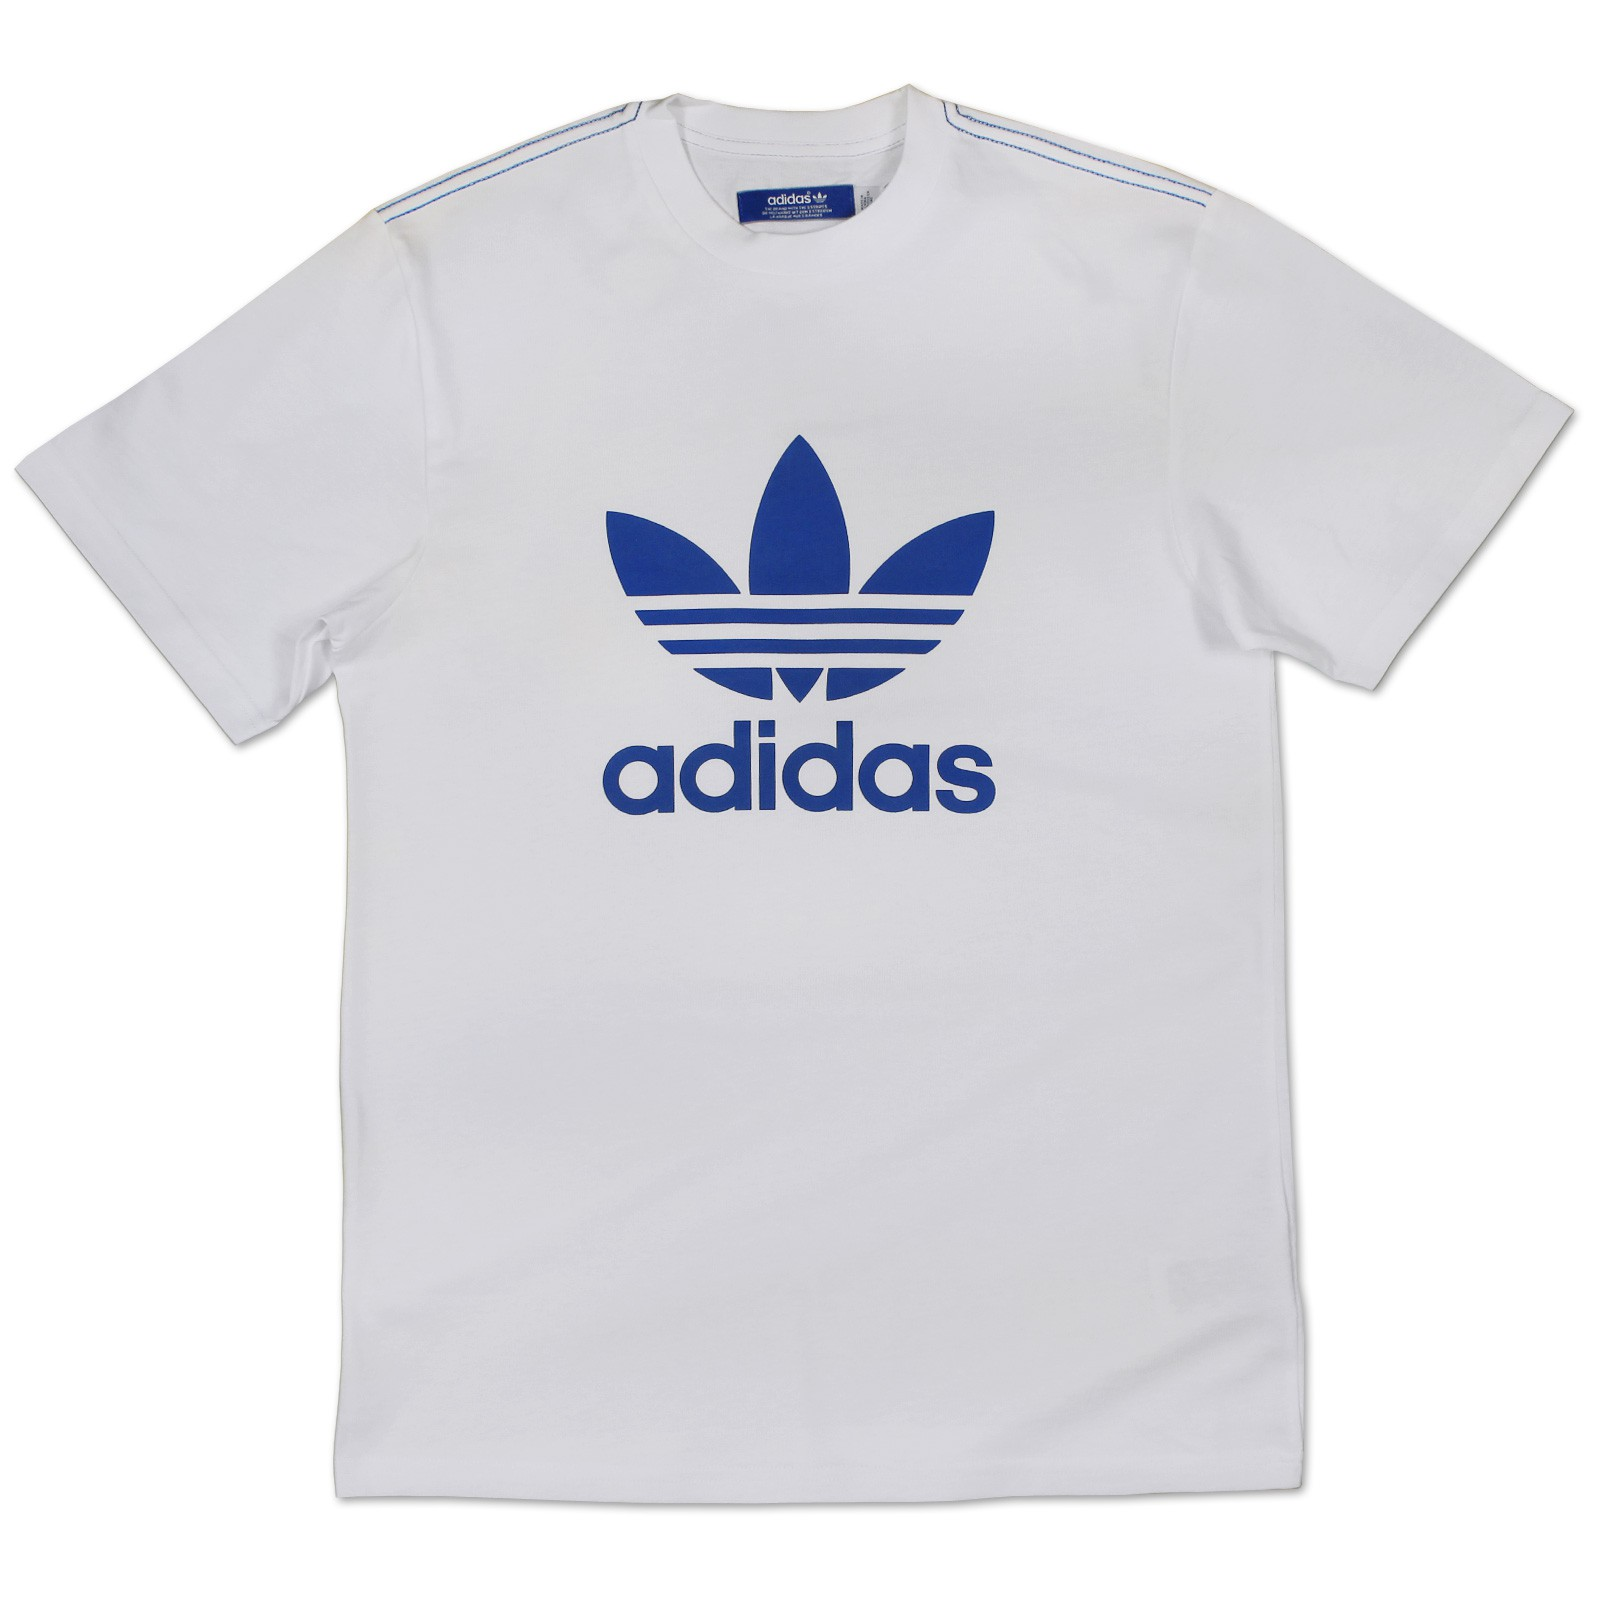 adidas originals trefoil tee herren freizeit 80er t shirt. Black Bedroom Furniture Sets. Home Design Ideas